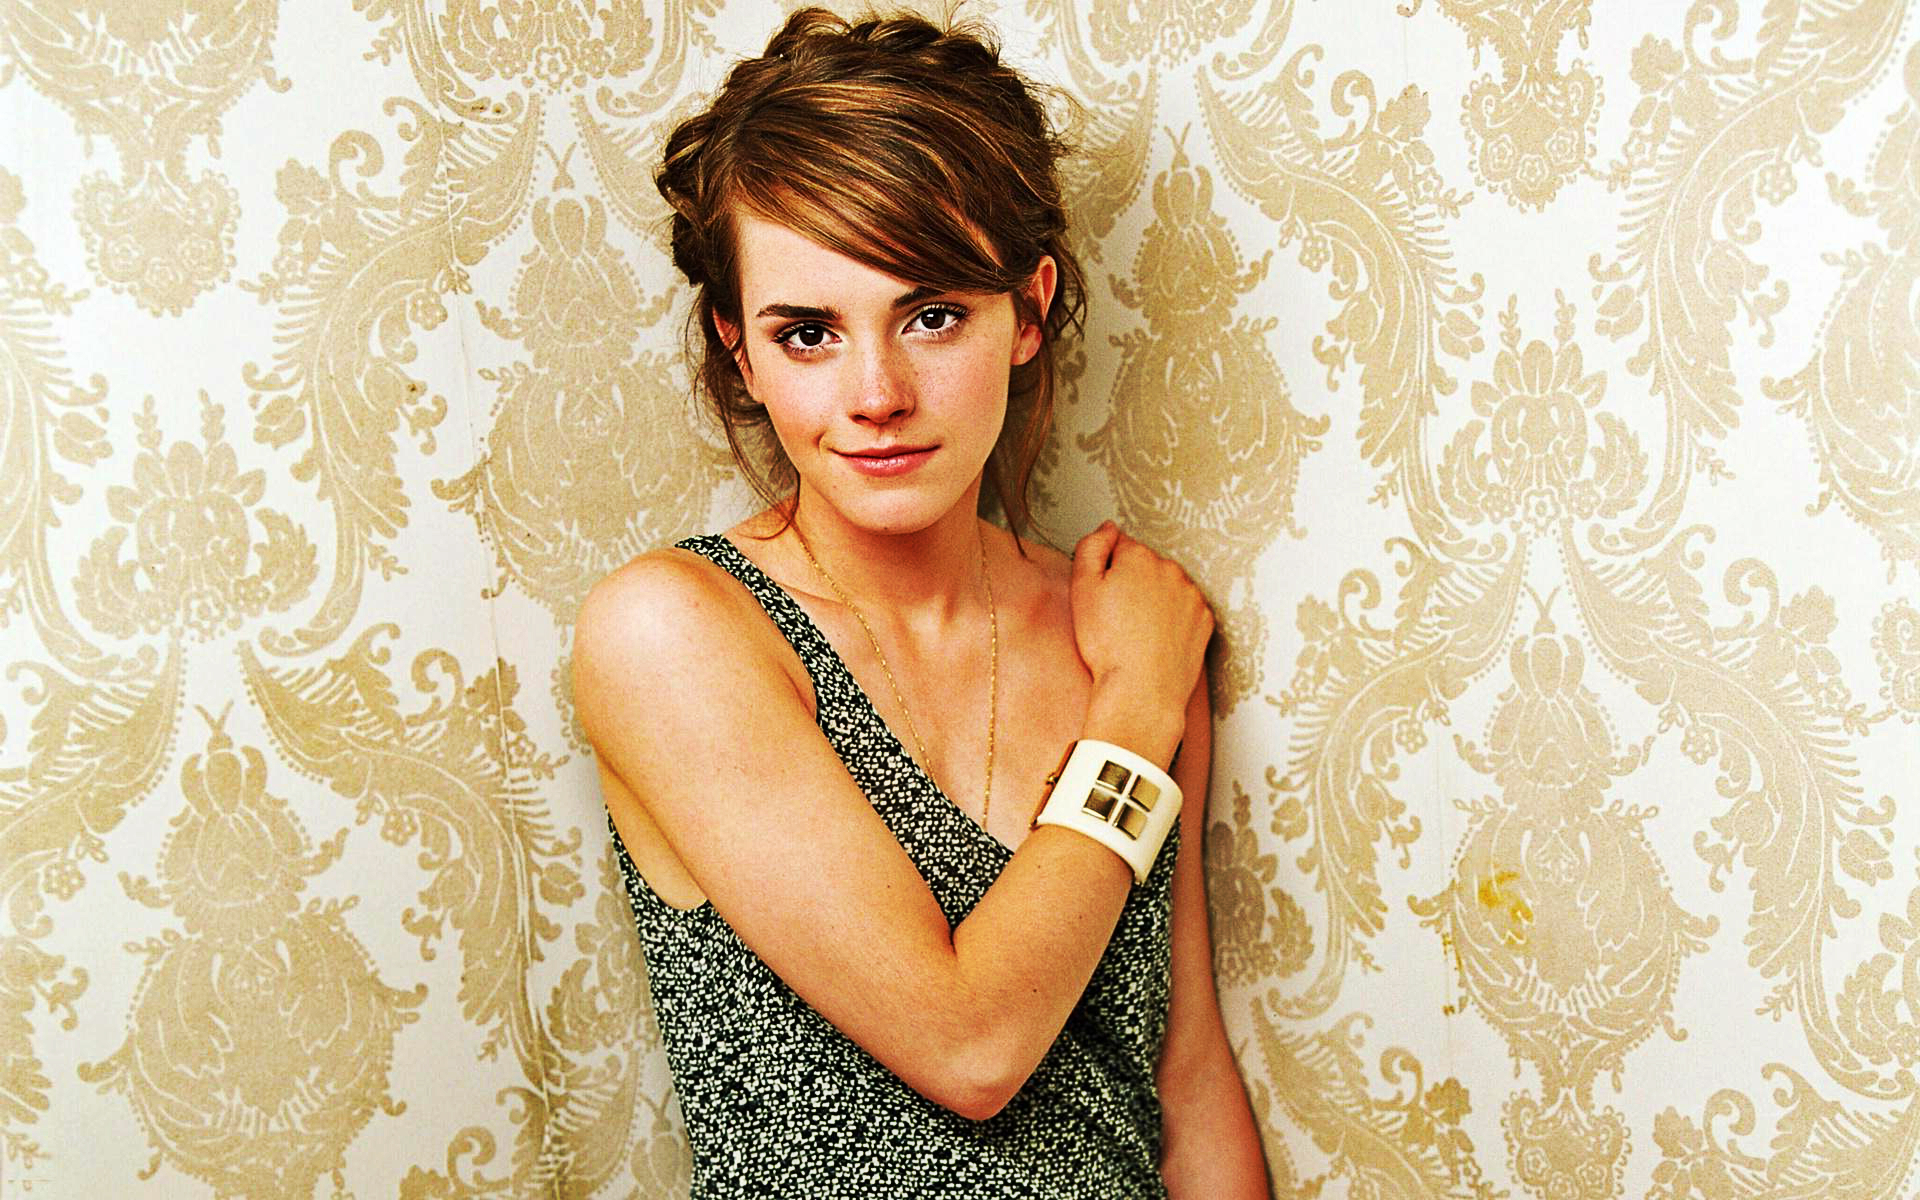 Emma Watson Latest Hd Wallpapers Top and High Quality HD 1920x1200